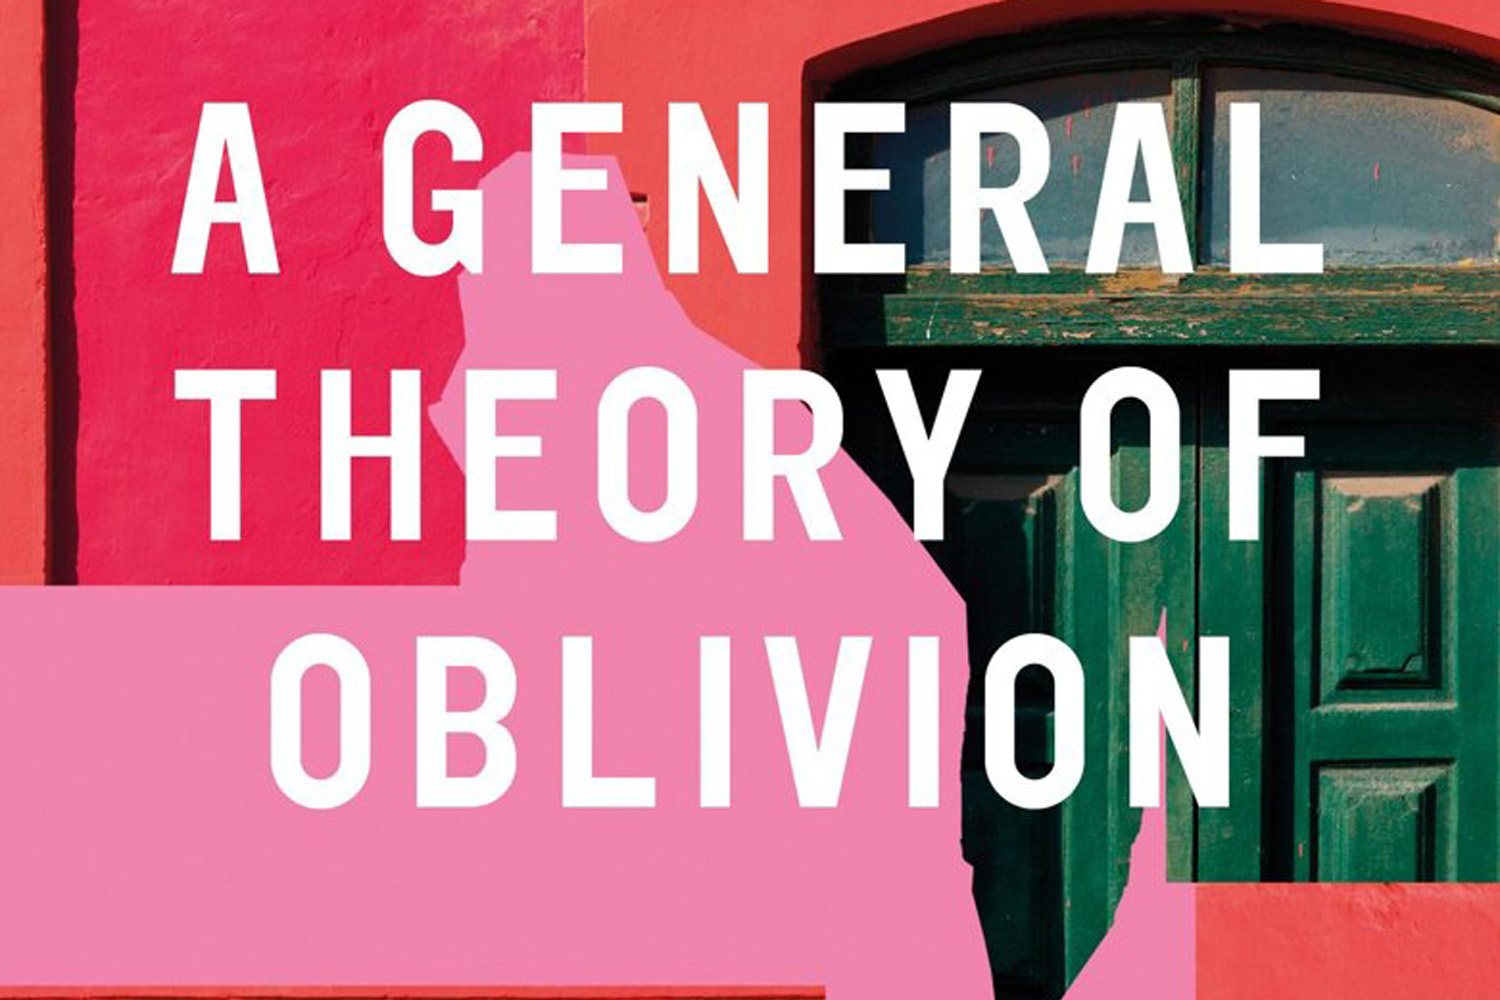 José Eduardo Agualusa: A general theory of oblivion